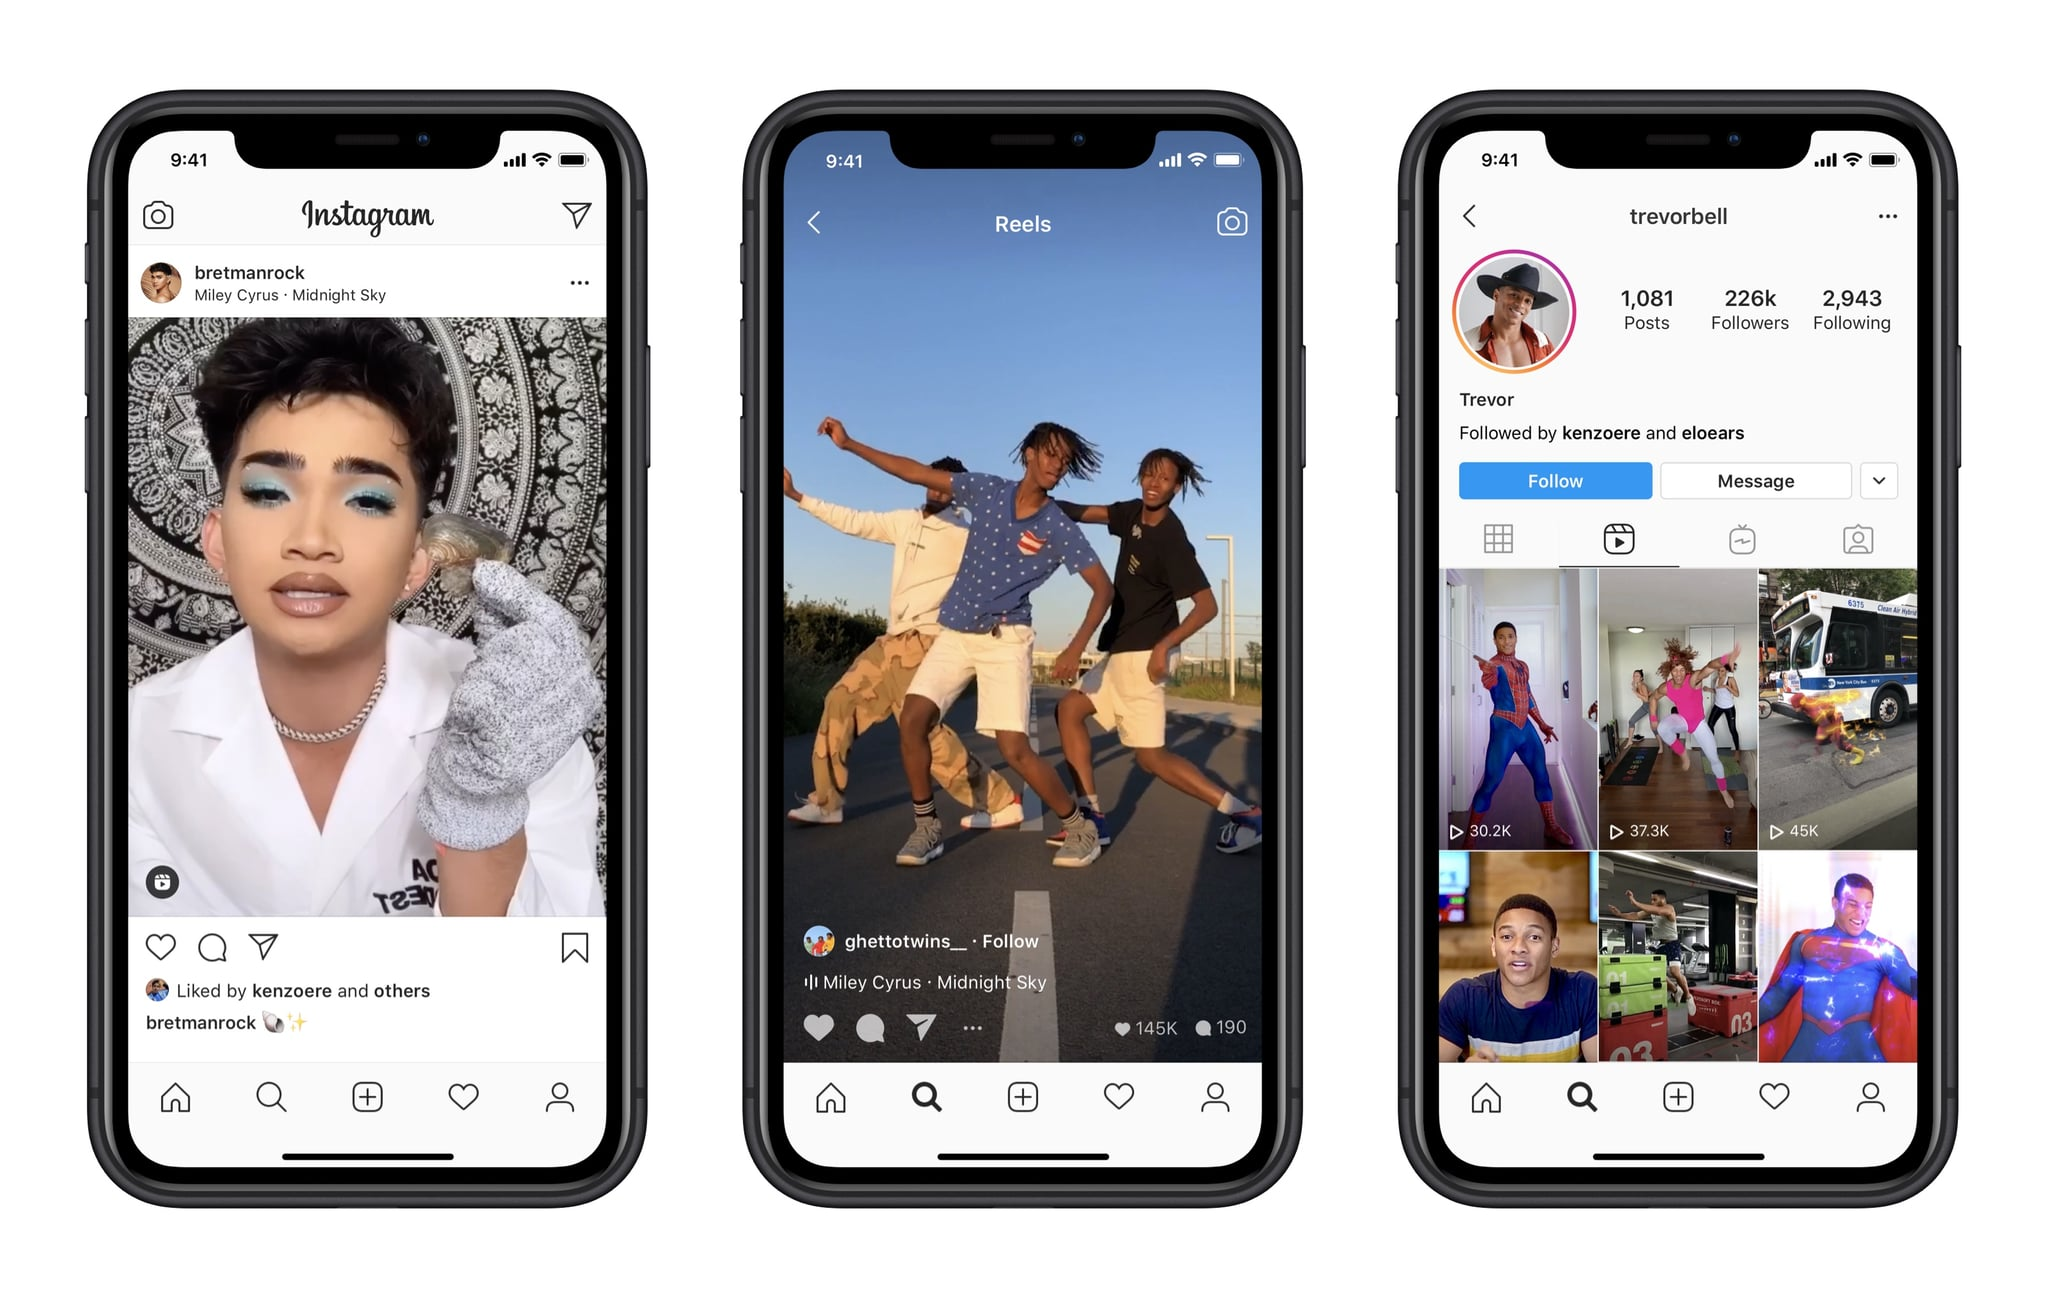 Reels are new Reach: Pro's tip on how to get more reach on Instagram in 2021